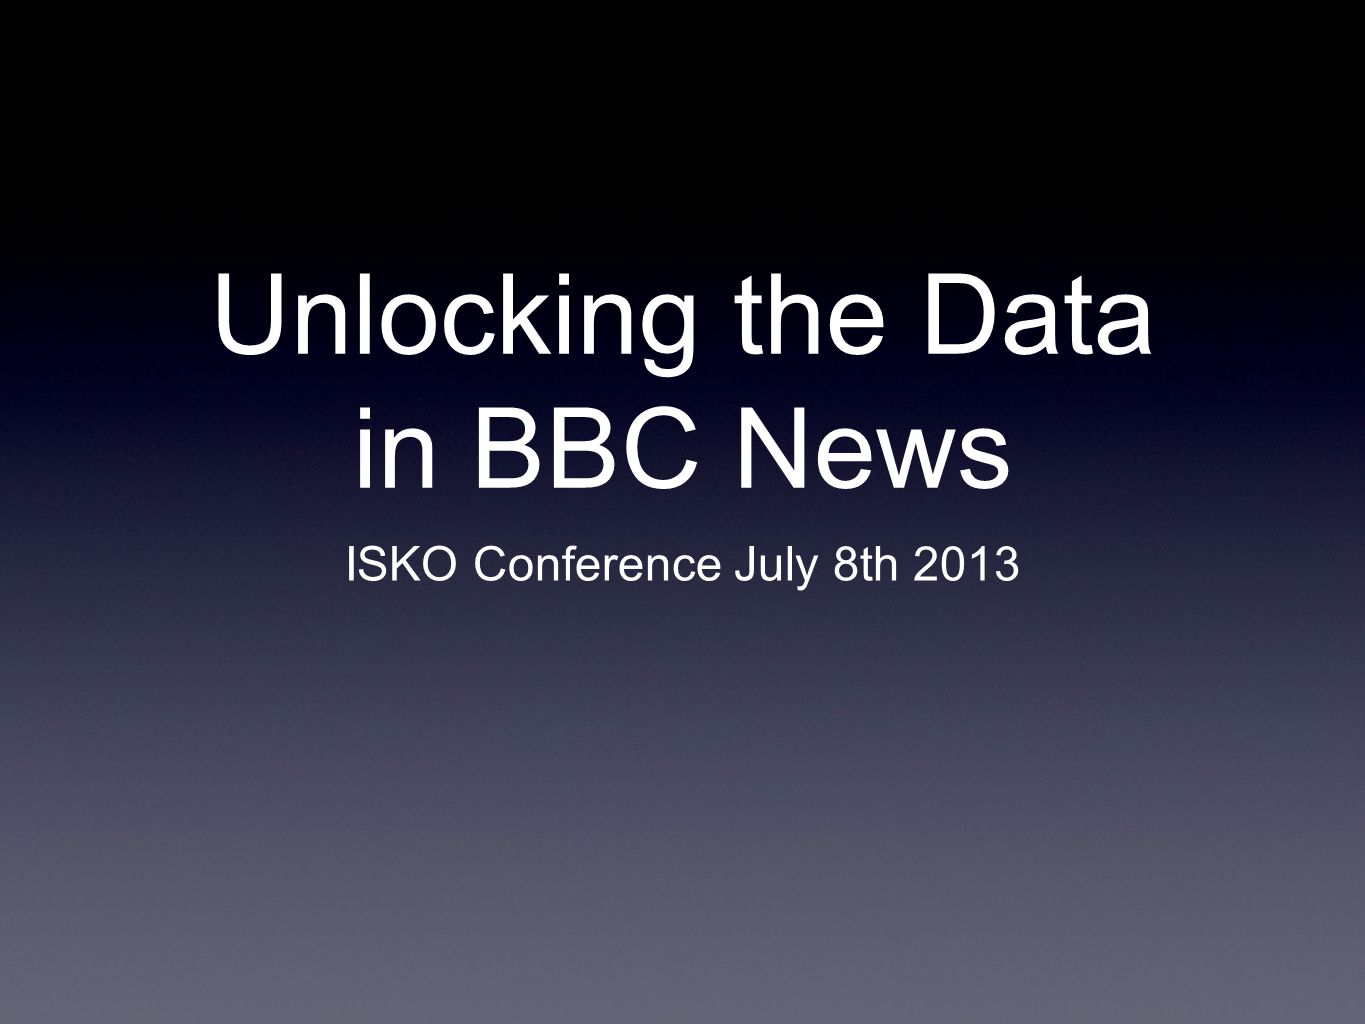 next steps rolling out tagging to journalists throughout BBC News making better use of rNews/RDFa - full mark-up integration piloting the use of organising content by storylines